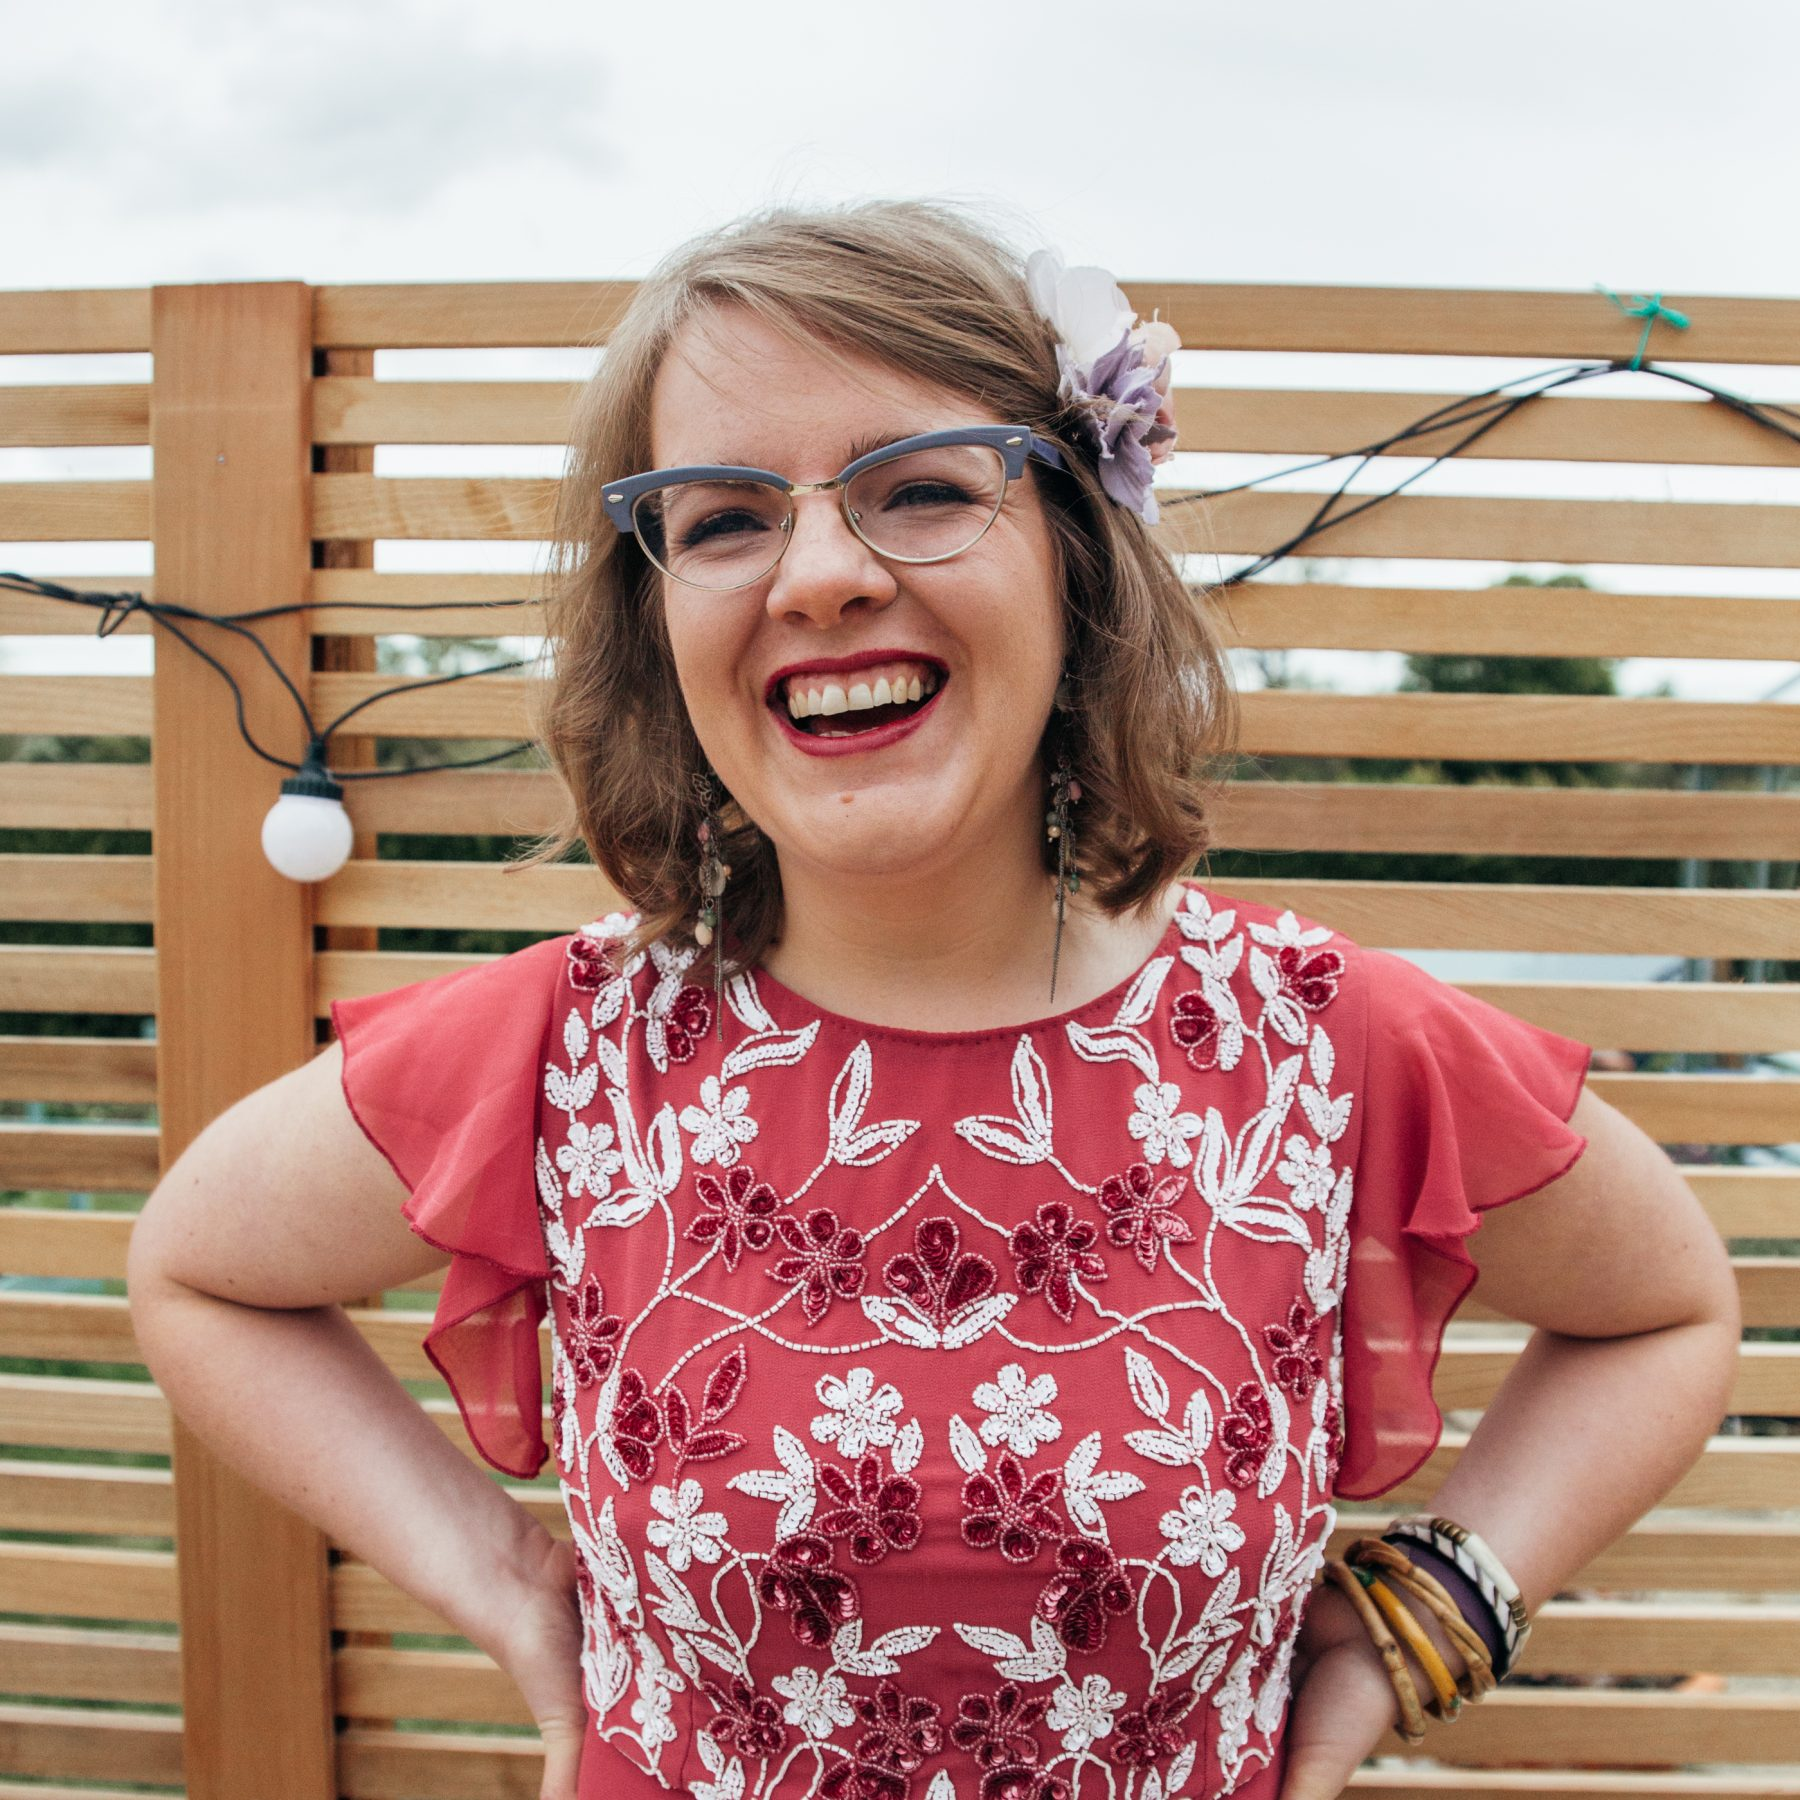 Kate is smiling brightly for the camera, her hands on her hips. She wears vintage librarian-style glasses, a flower in her hair and a bright red, blue and black flowery top.